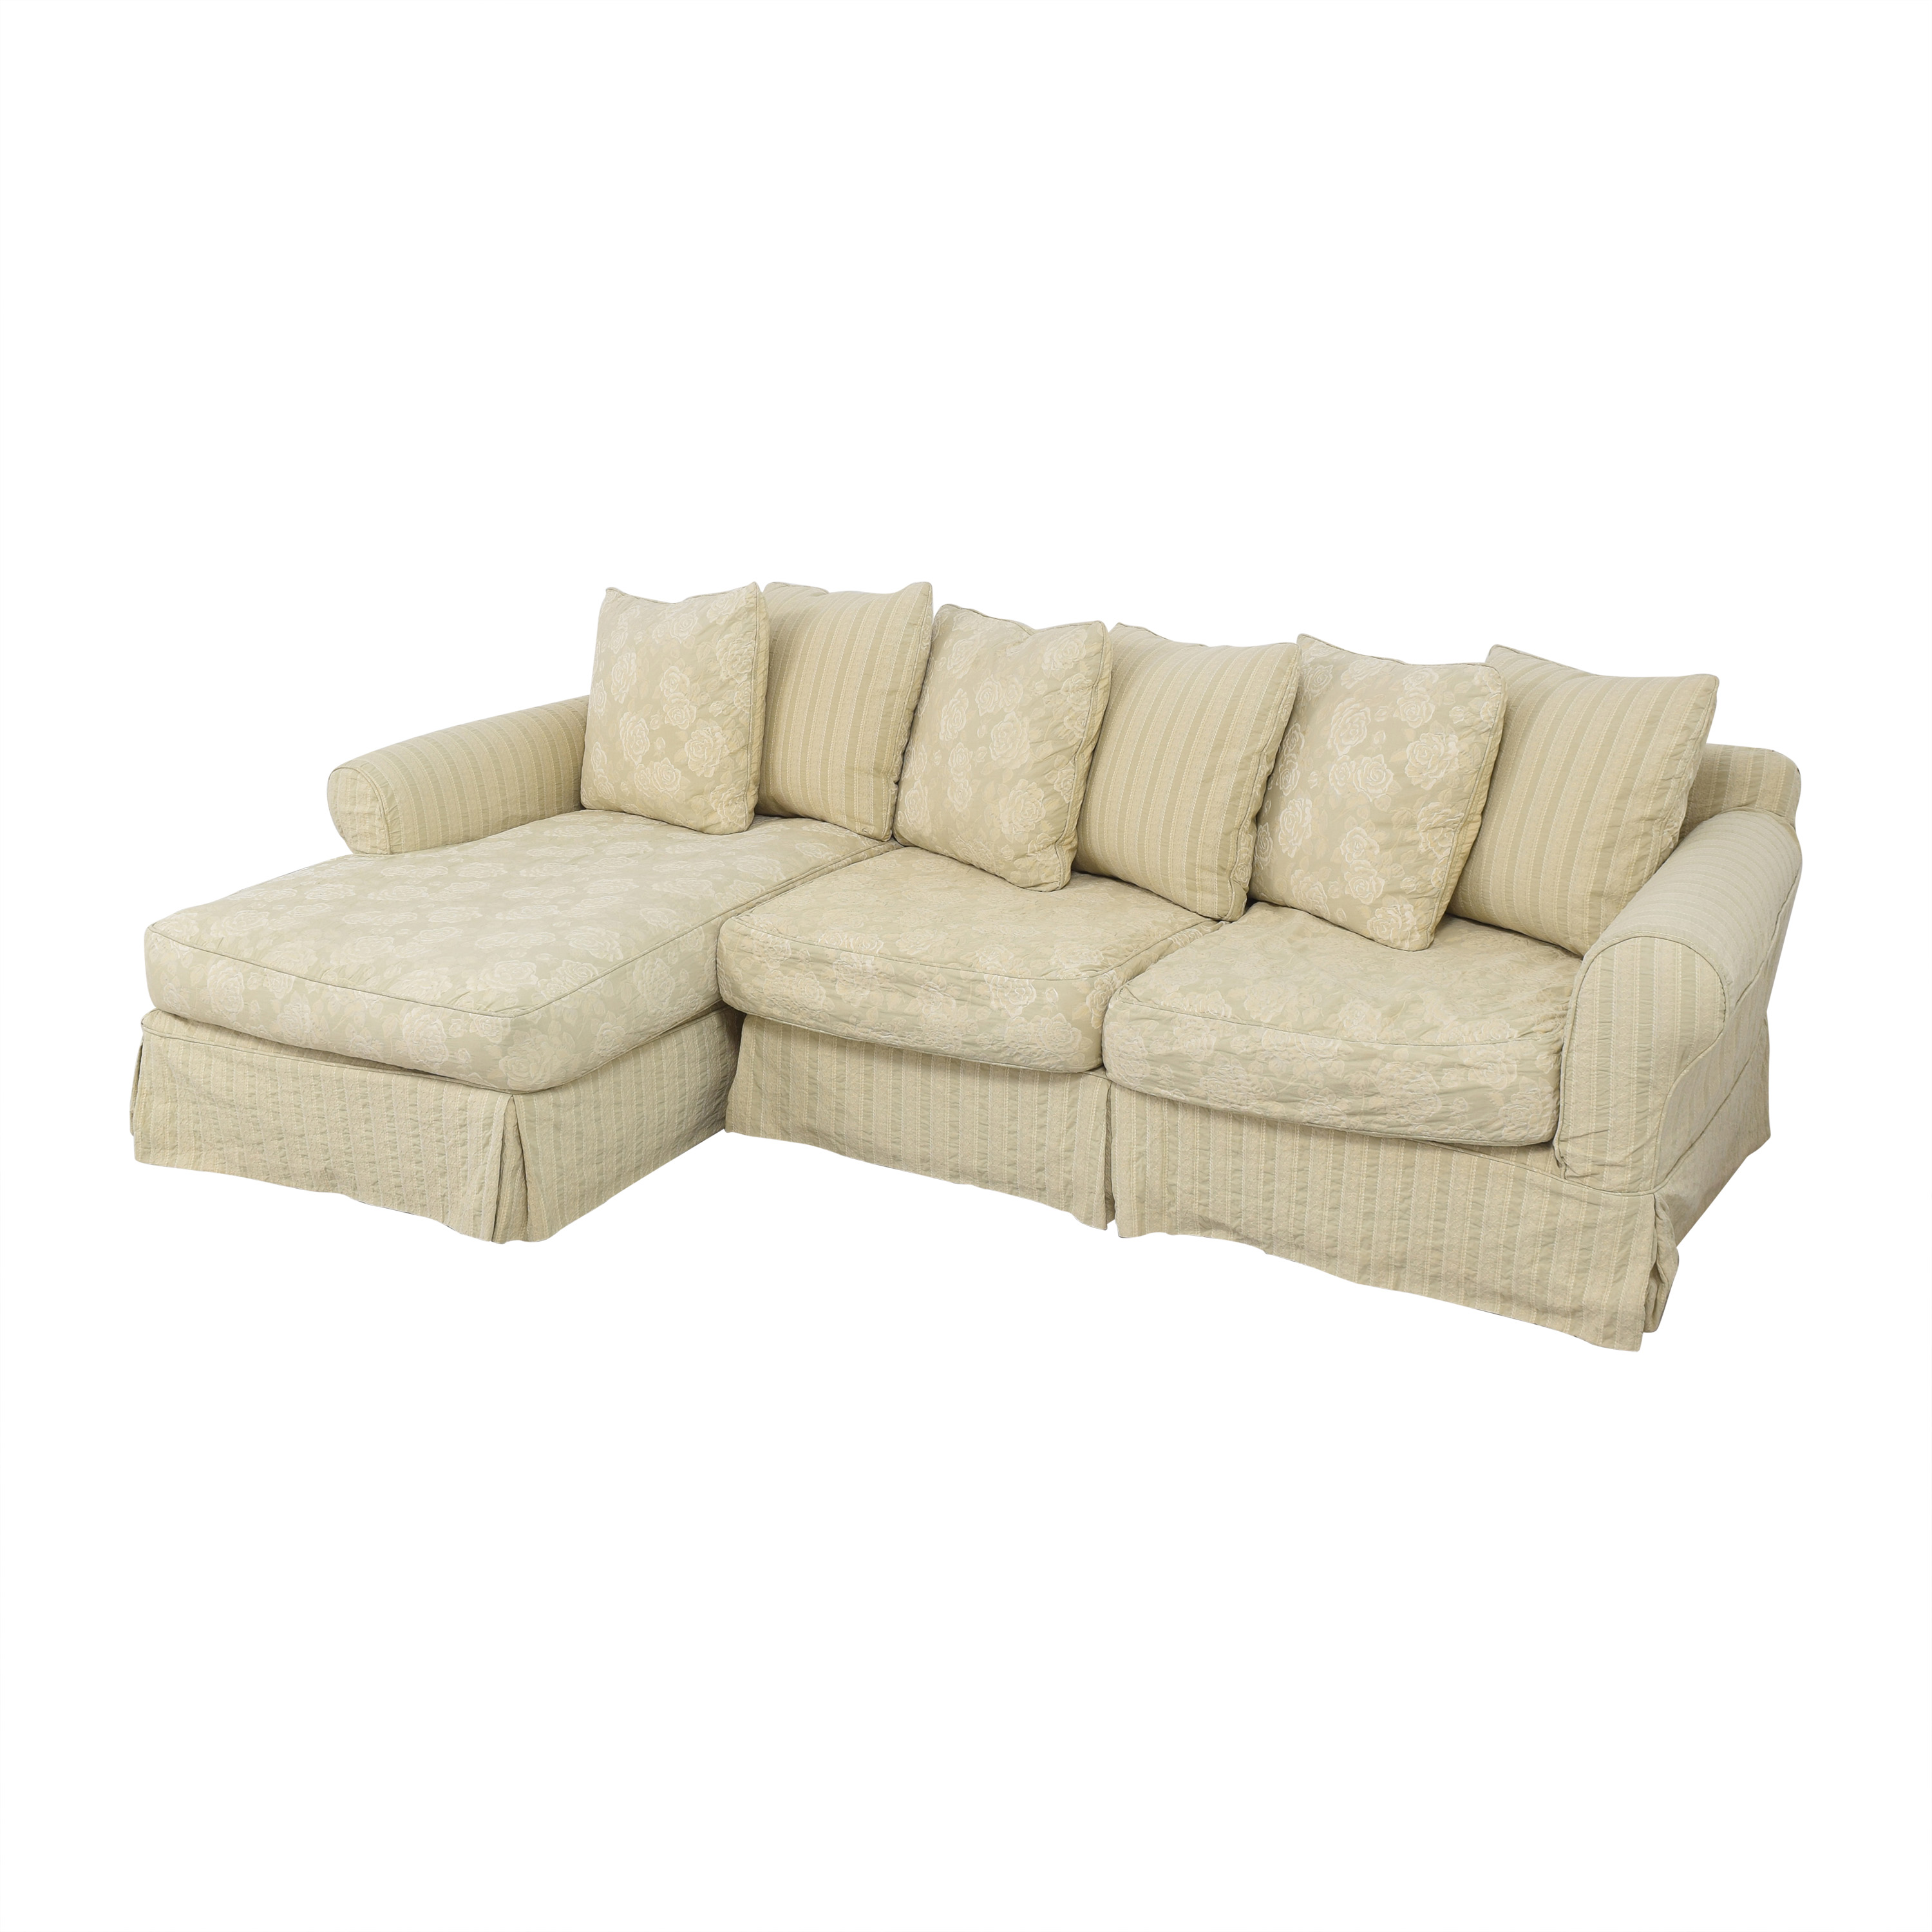 Cisco Brothers Cisco Brothers Slipcovered Chaise Sectional Sofa ct